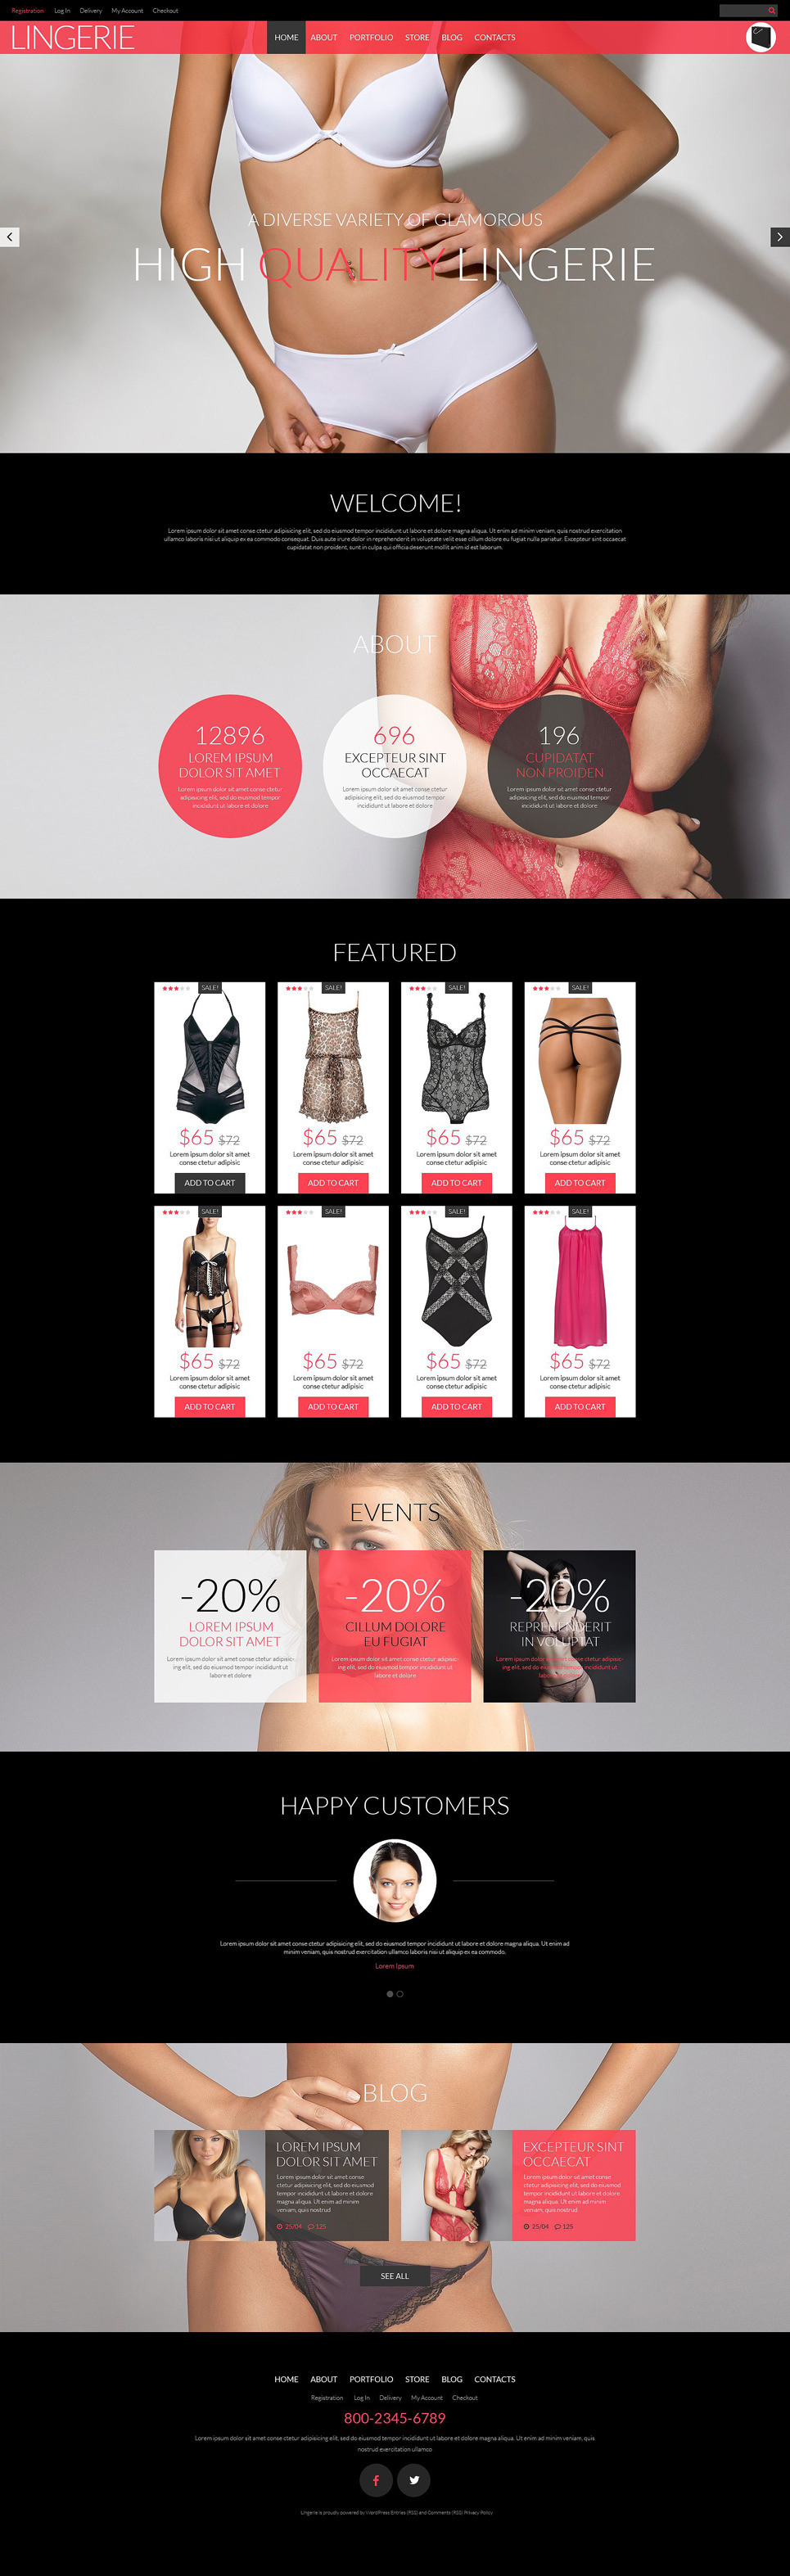 Lingerie Shop WooCommerce Theme New Screenshots BIG